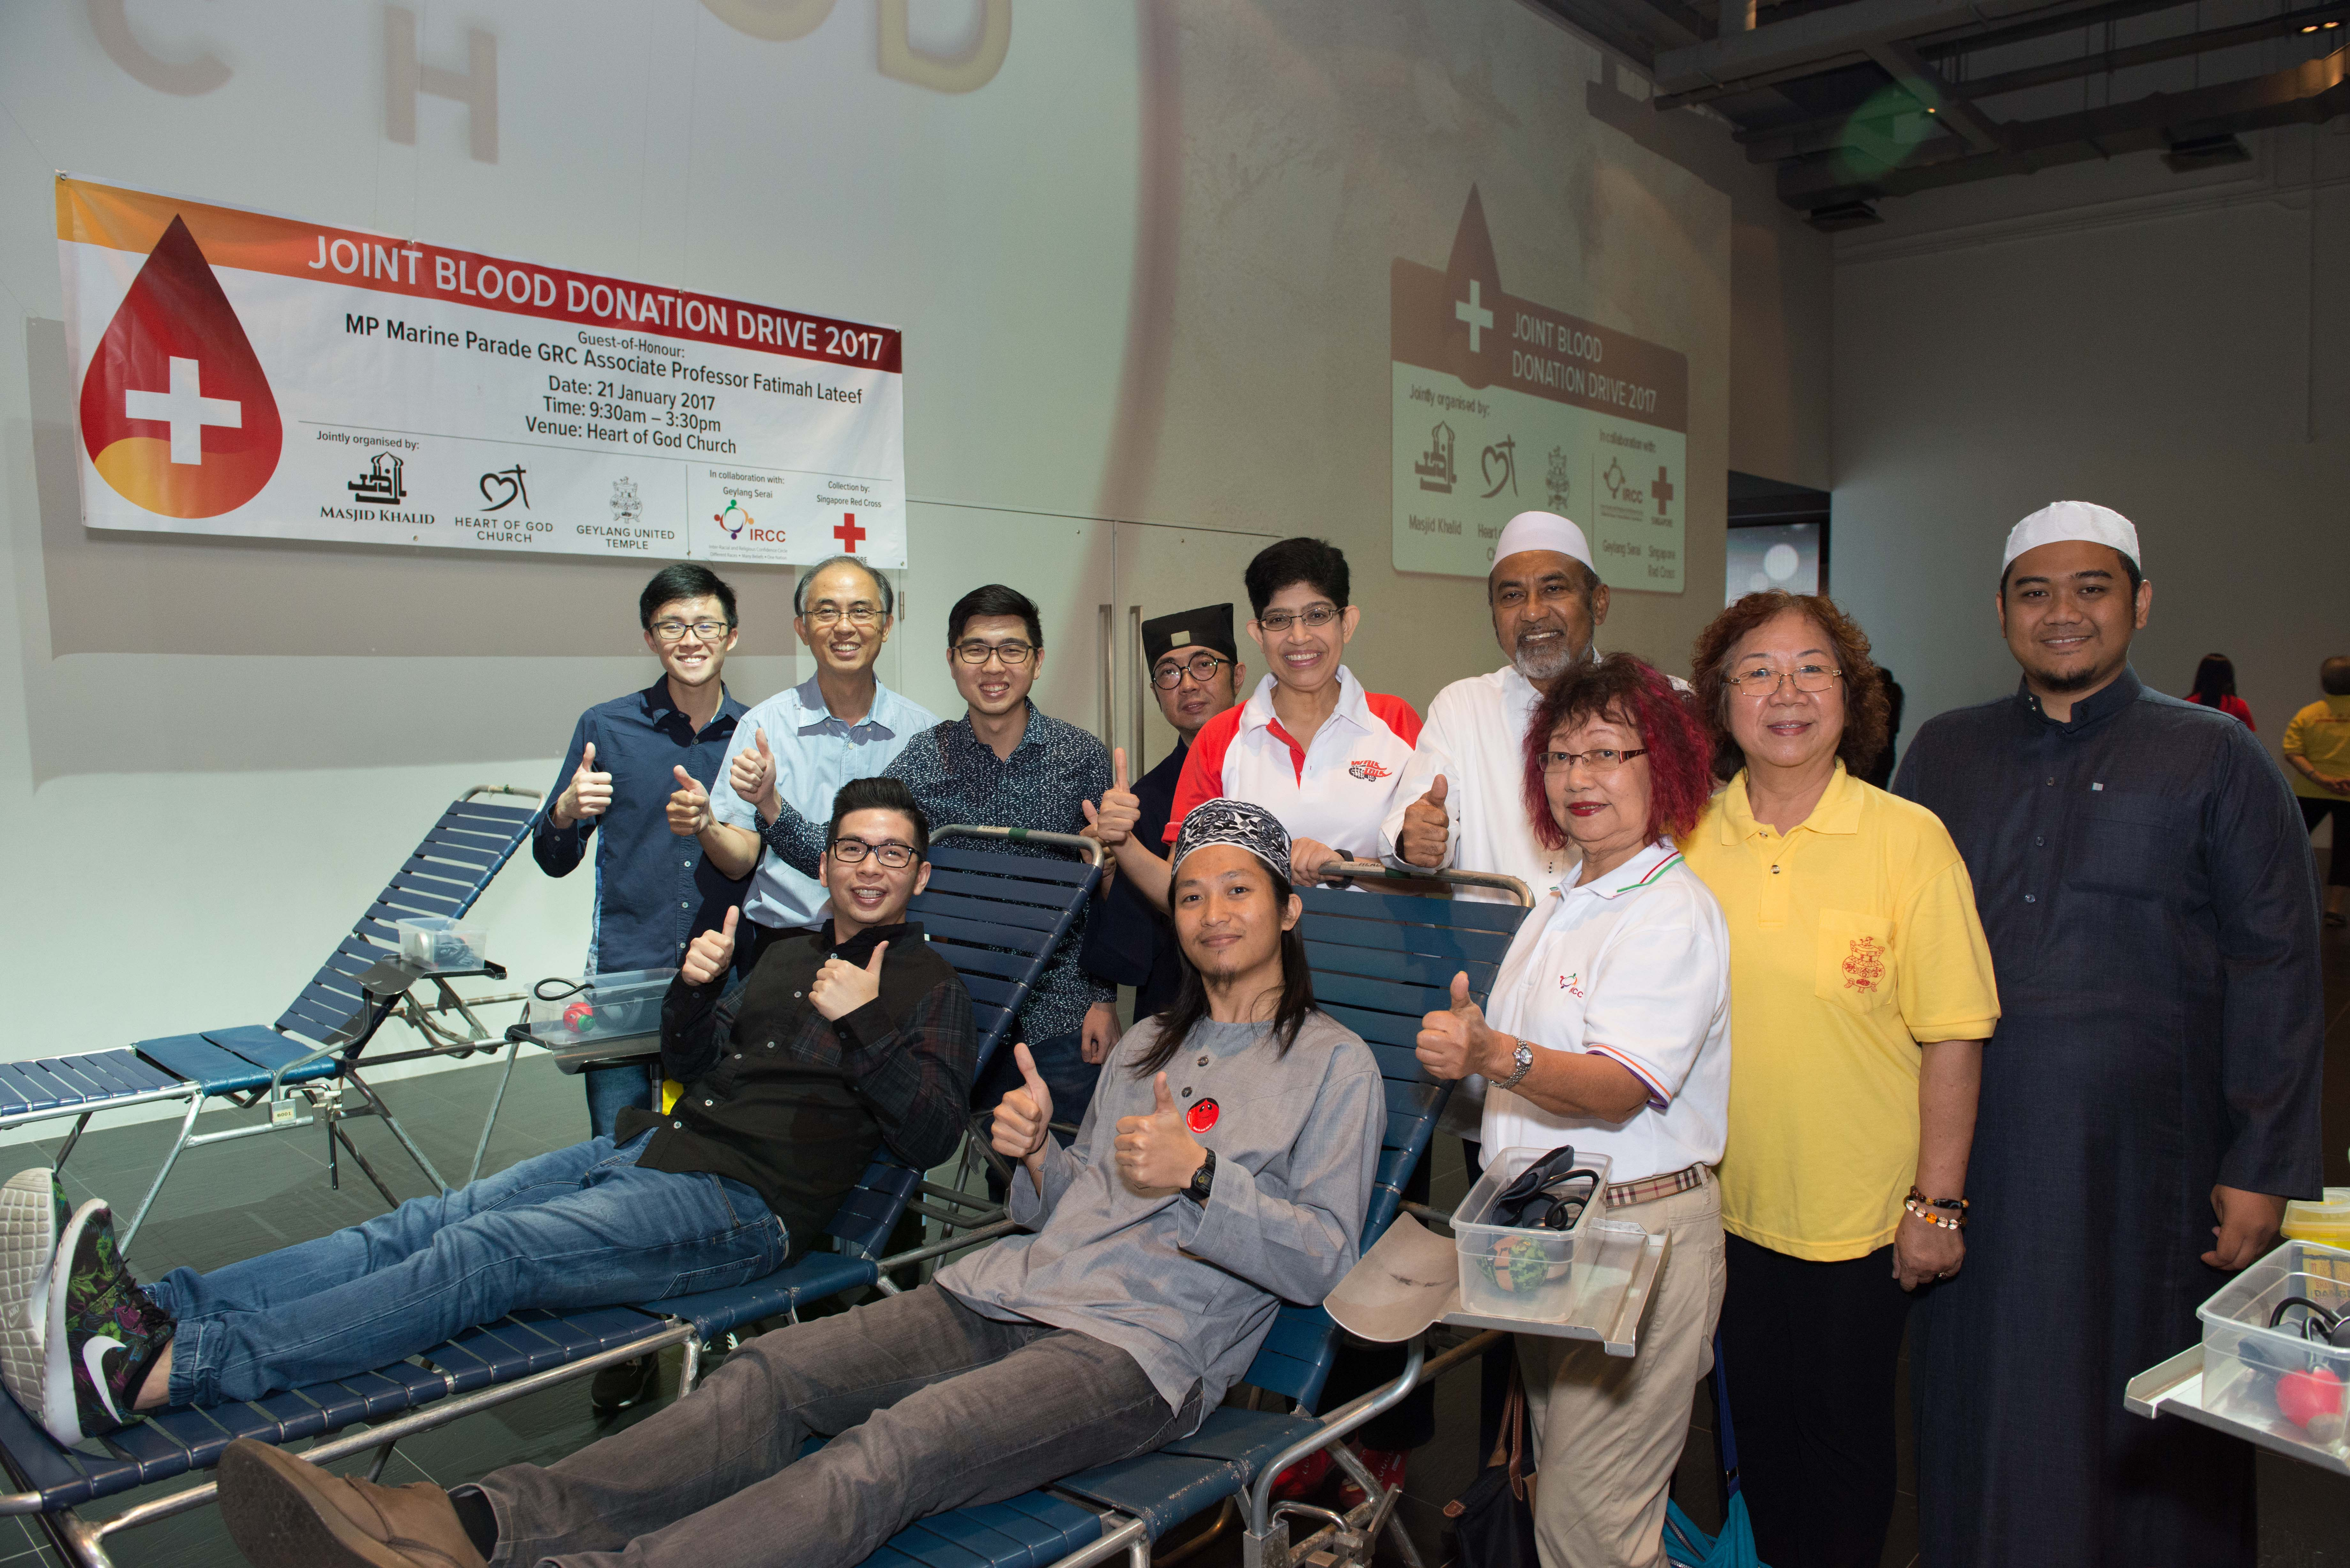 Religious leaders from Heart of God Church, Khalid Mosque & Geylang United Temple together with Minister of Parliament Associate Professor Fatimah Lateef at the Joint Blood Donation Drive